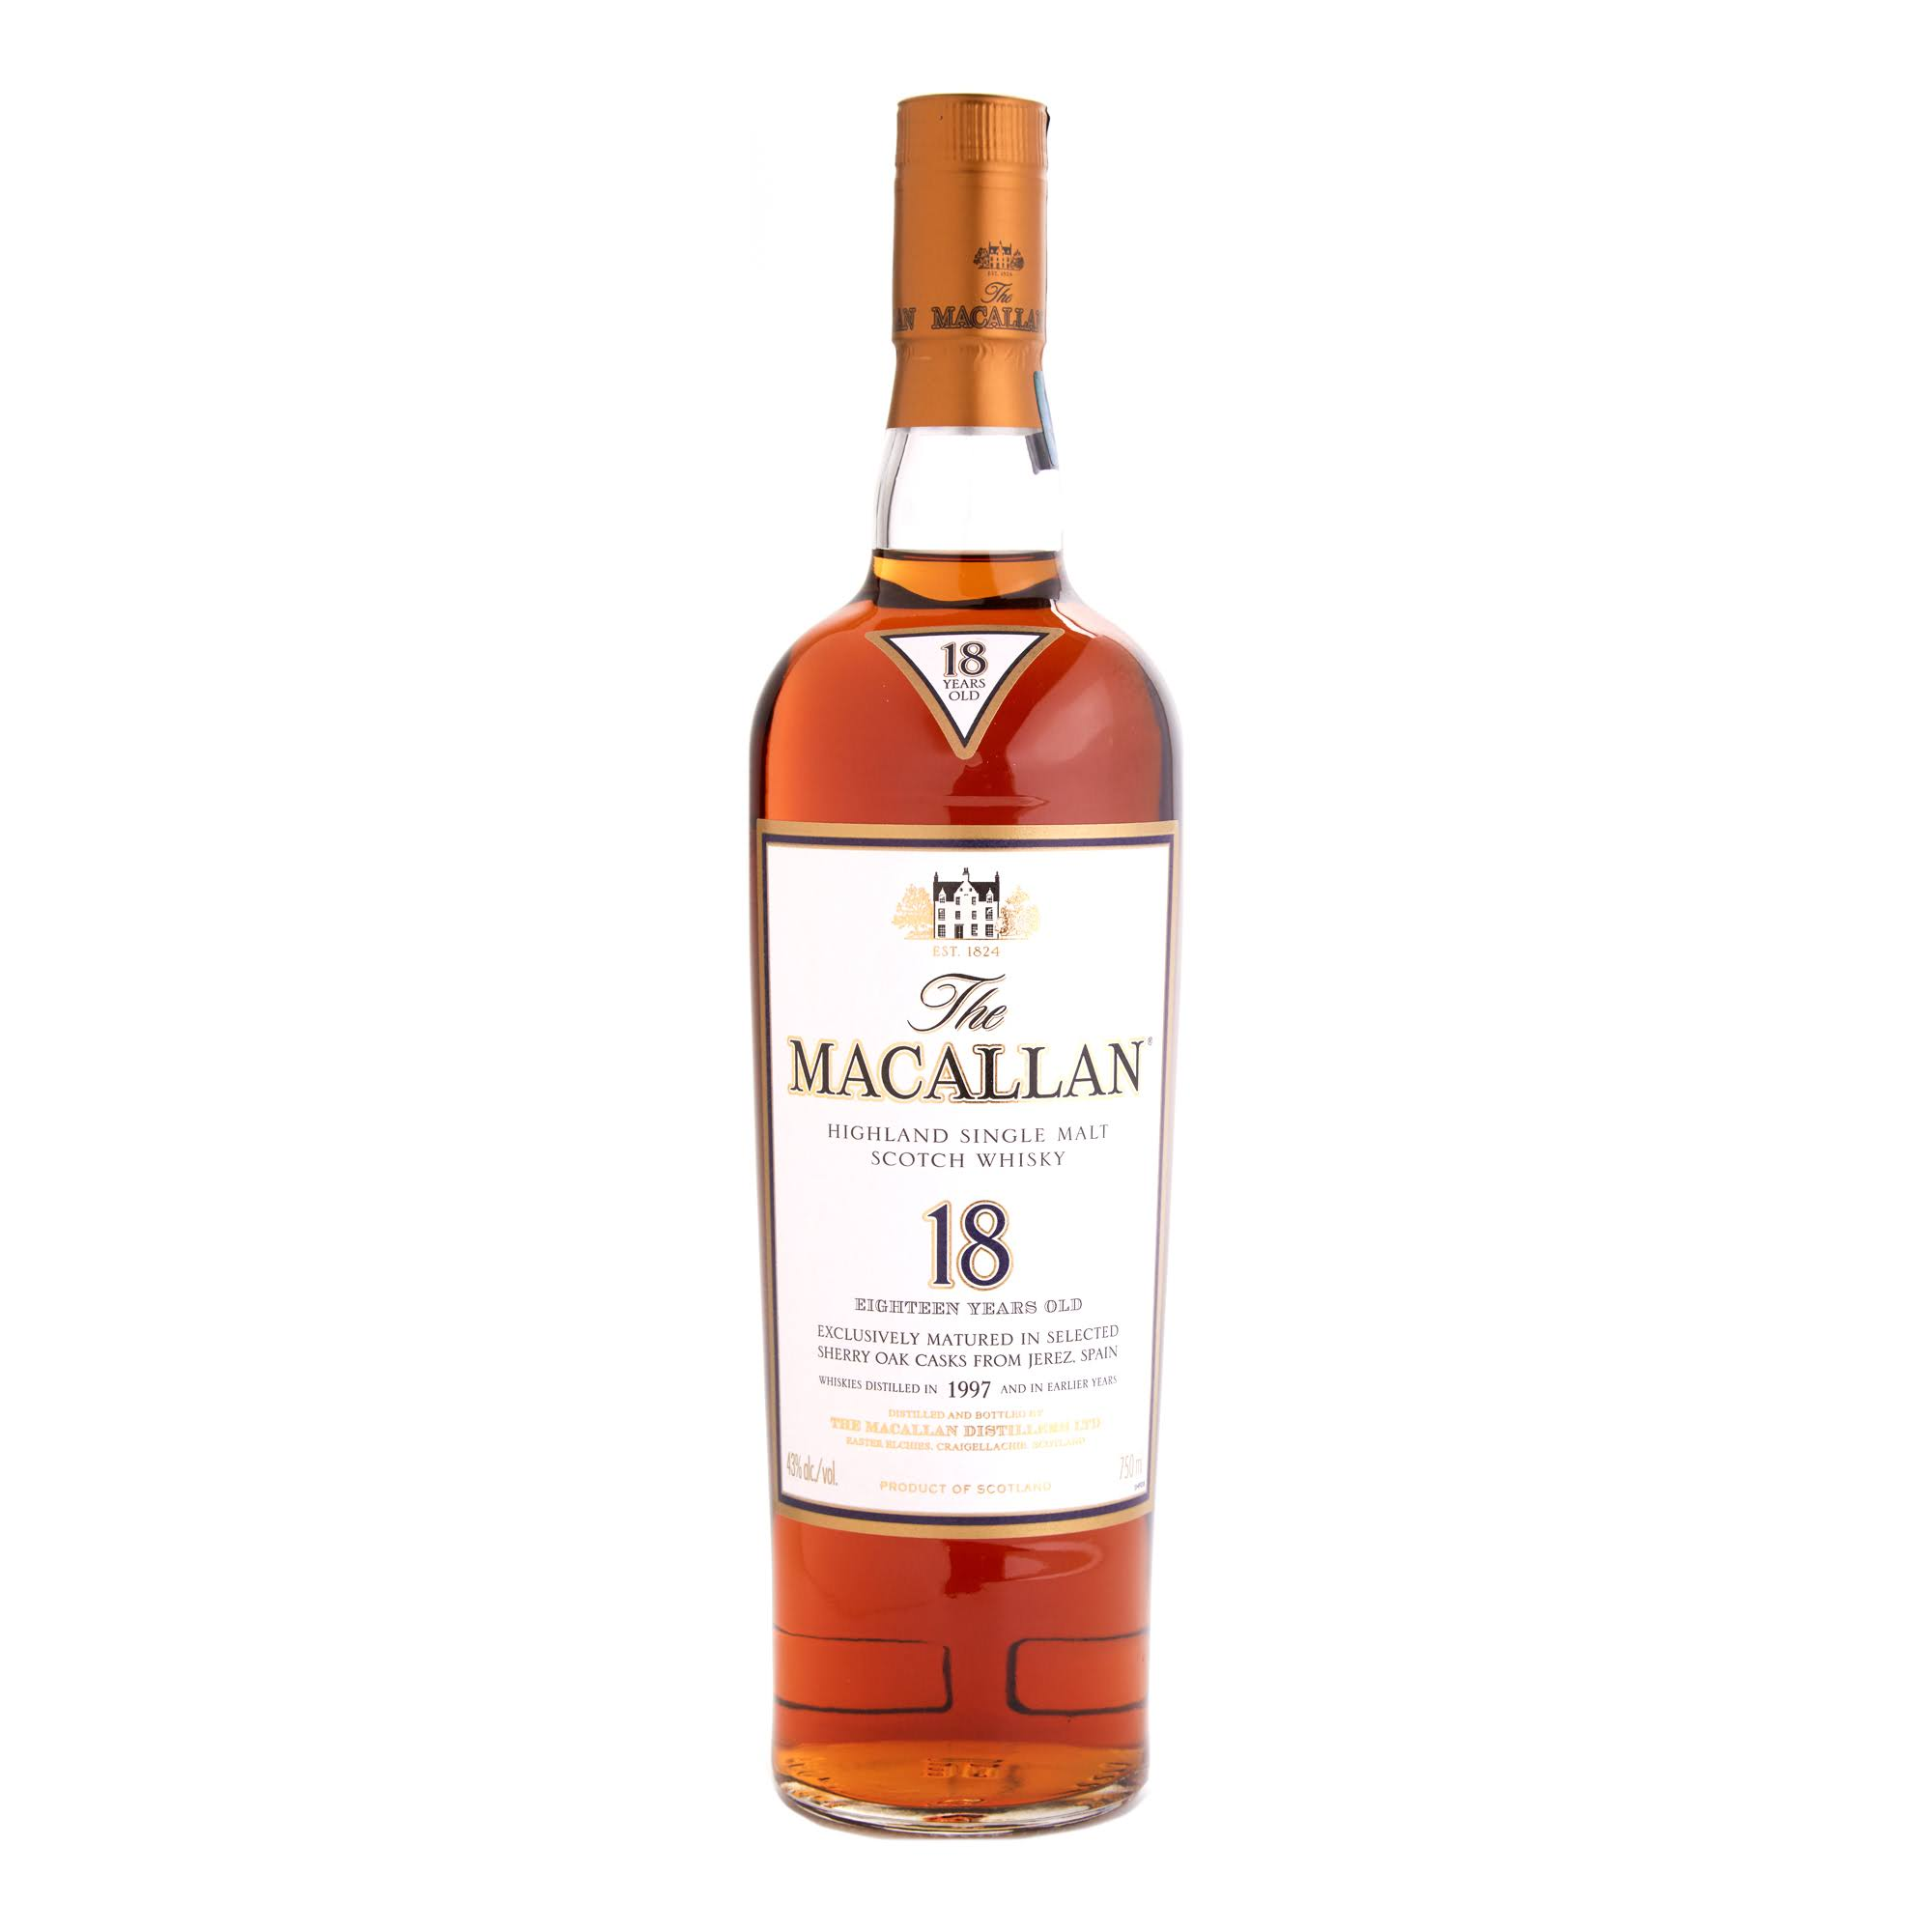 The Macallan 18 Year Highland Single Malt Scotch Whiskey - 750 ml bottle